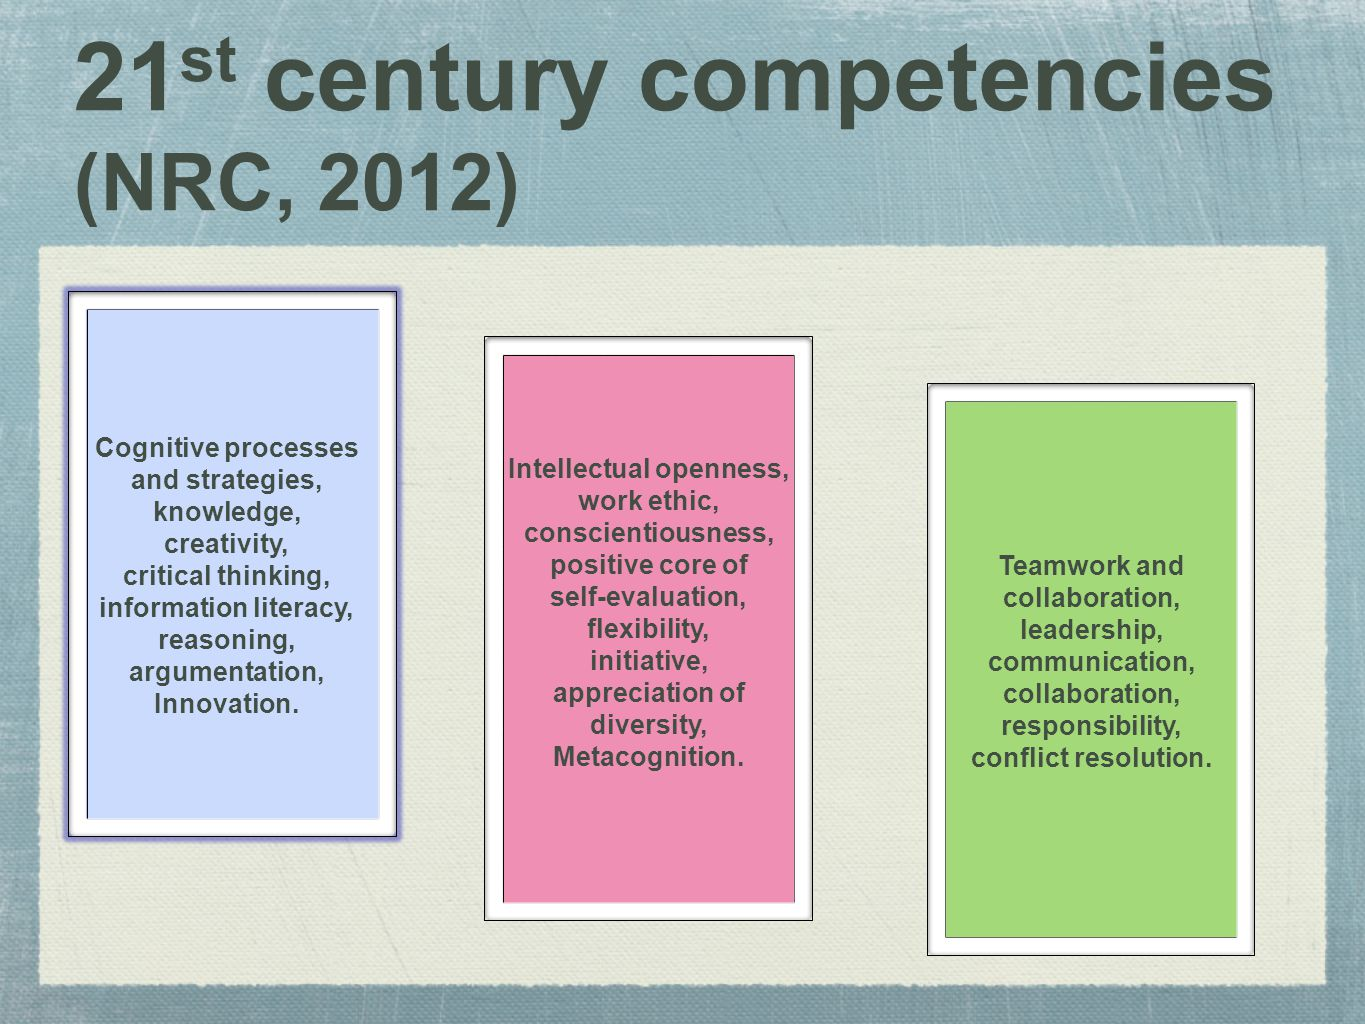 21 st century competencies (NRC, 2012) Cognitive processes and strategies, knowledge, creativity, critical thinking, information literacy, reasoning, argumentation, Innovation.